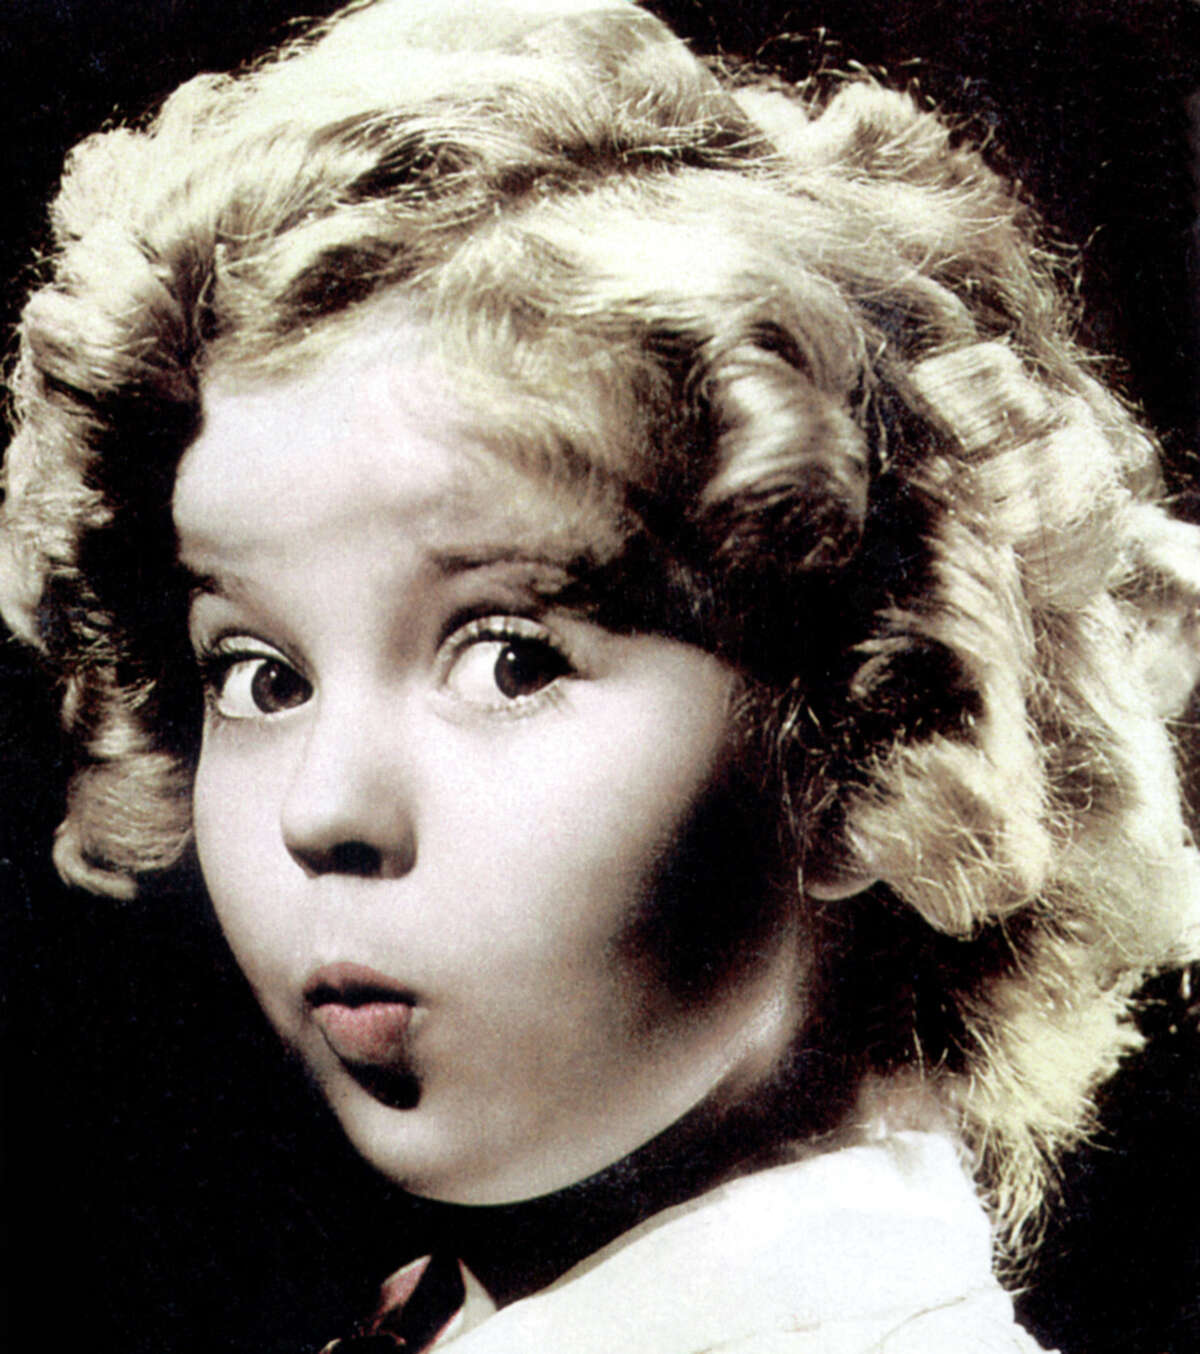 Circa 1930s: Shirley Temple and her famous baby face.